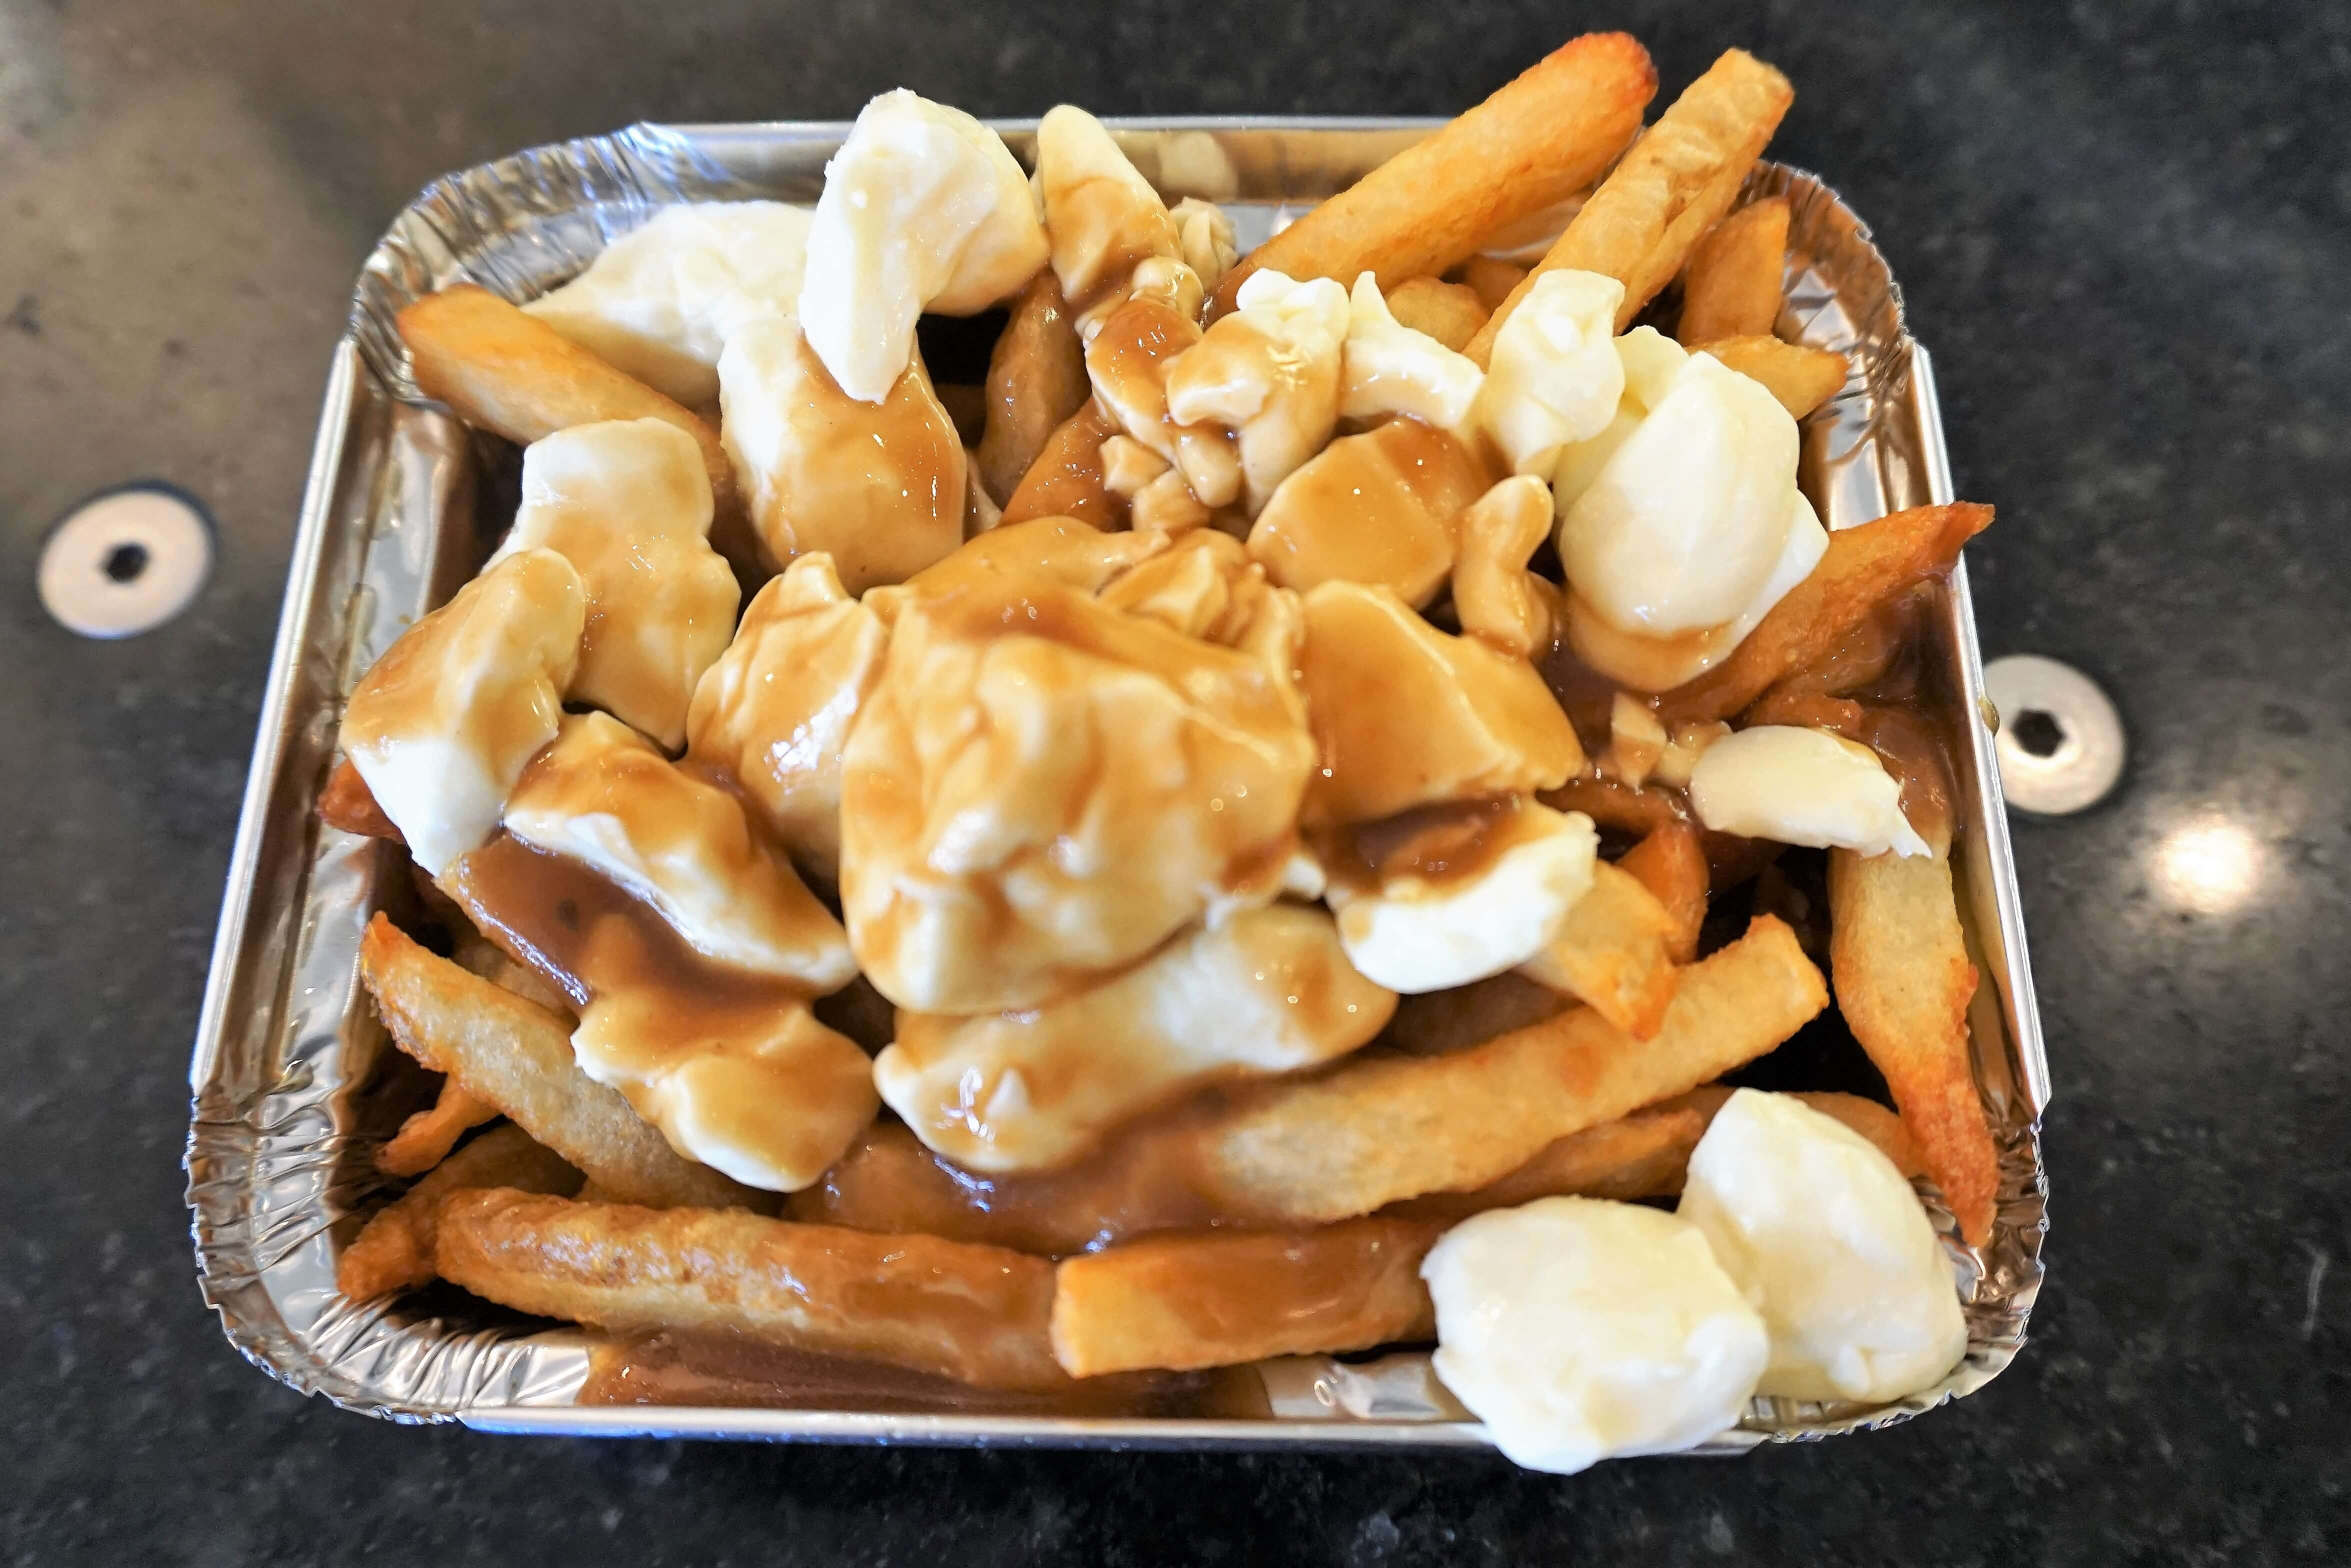 Delicious poutine from Chez Ashton--a required food for Quebec visitors